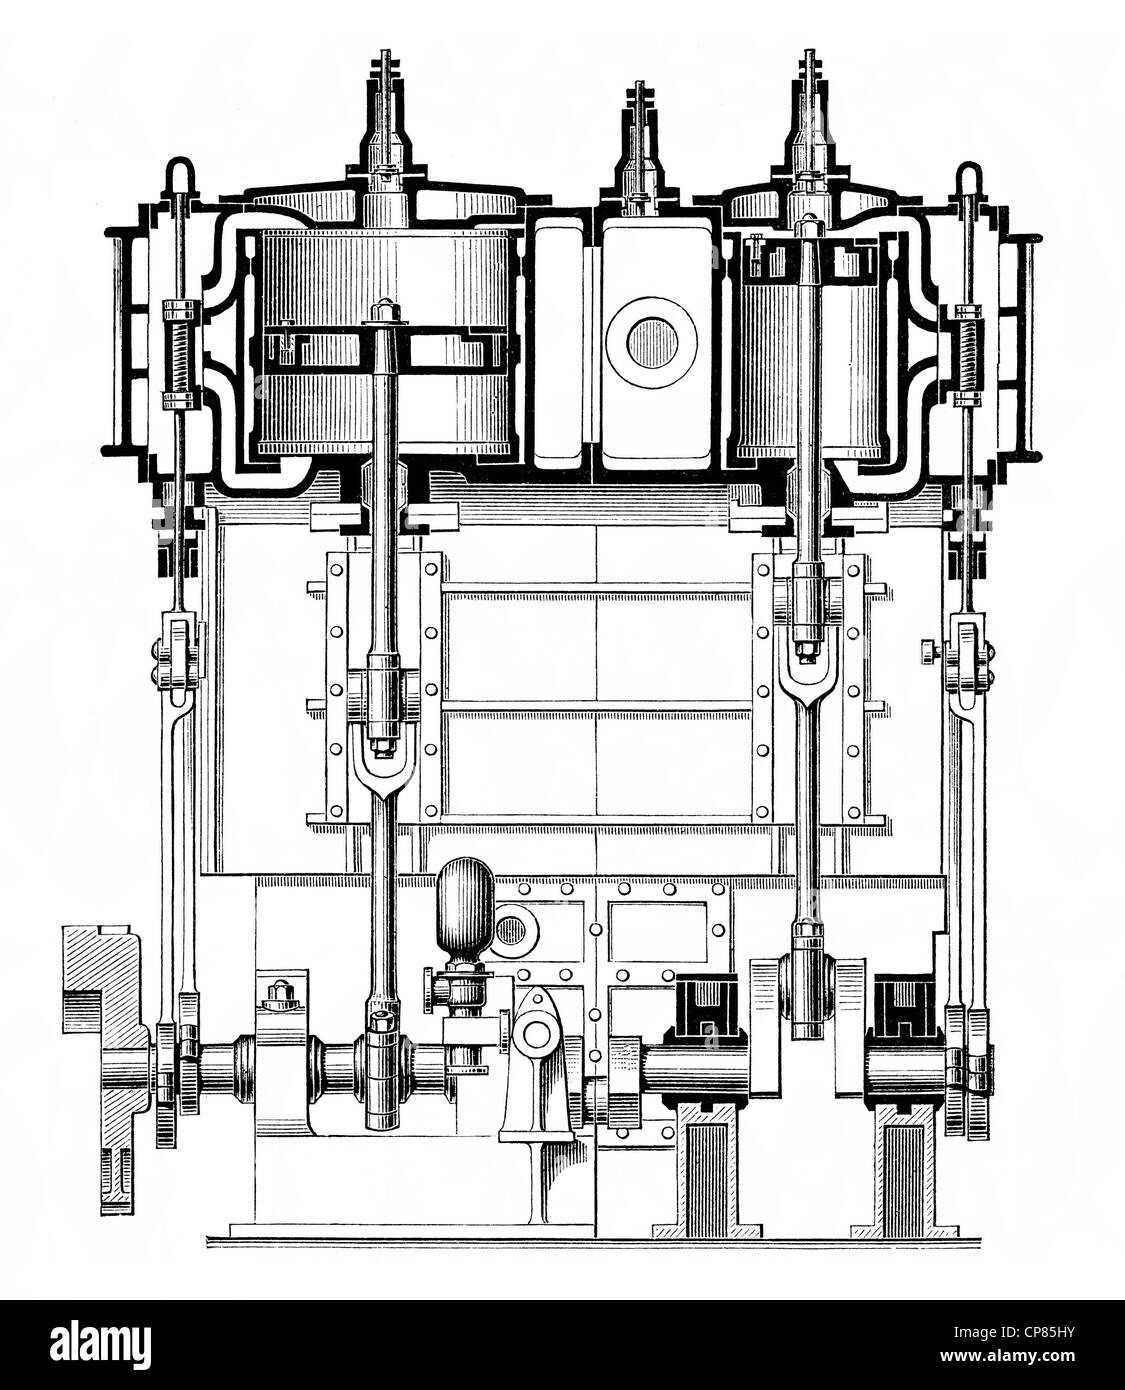 Receiver compound engine for the propulsion of ships' propellers, steam engine, piston heat engine, the thermal - Stock Image